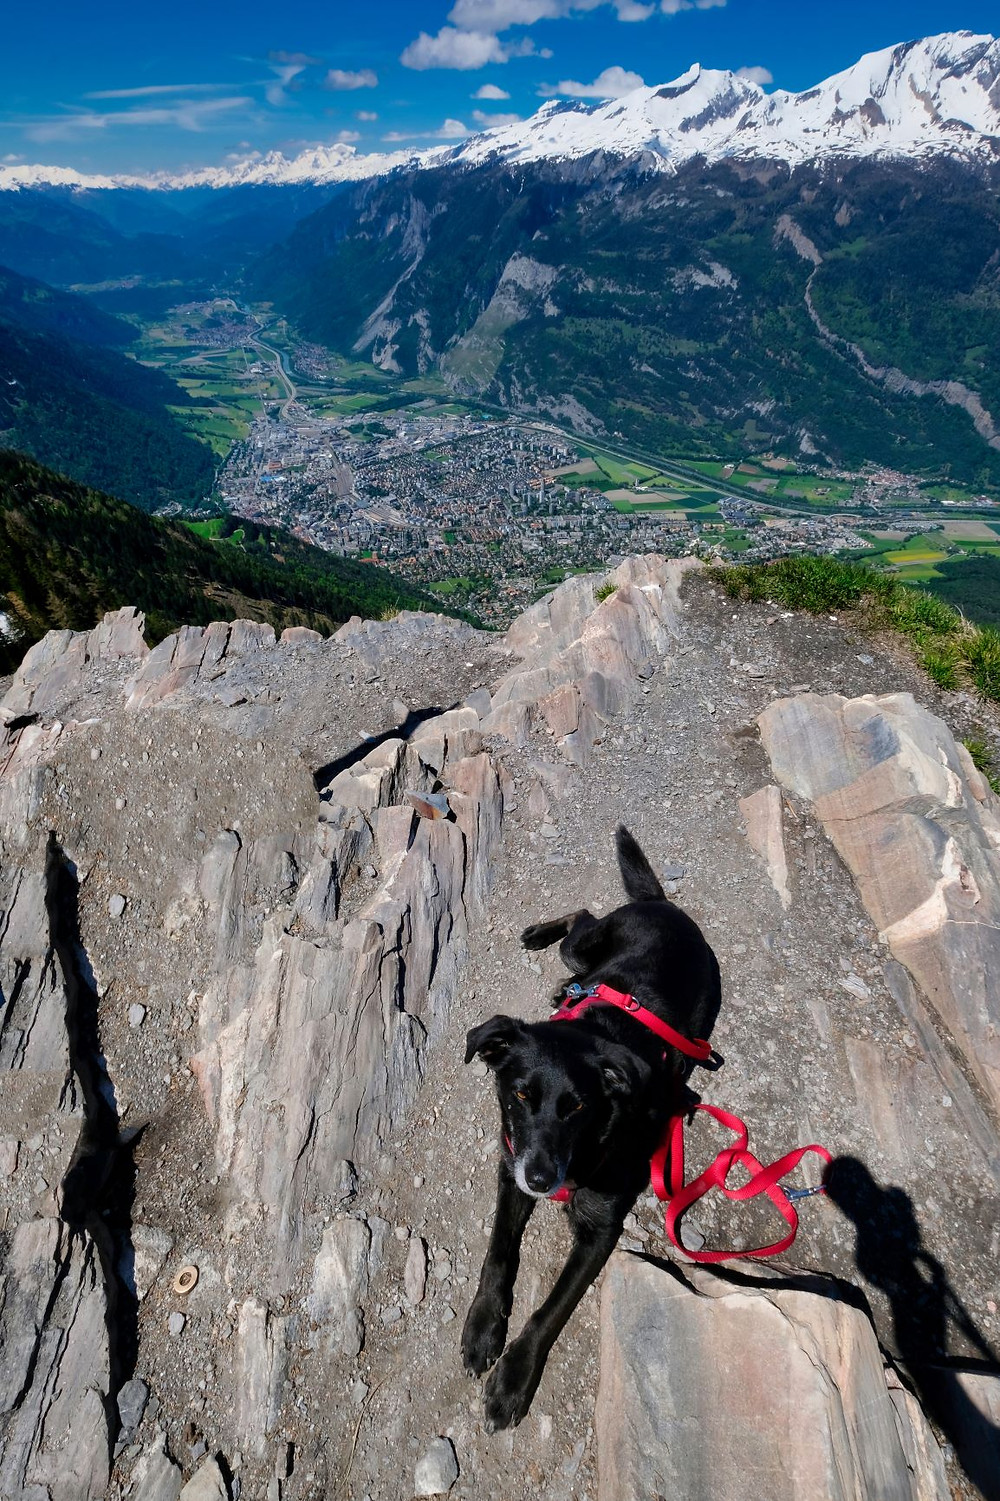 Dogs and mountains make me happy.